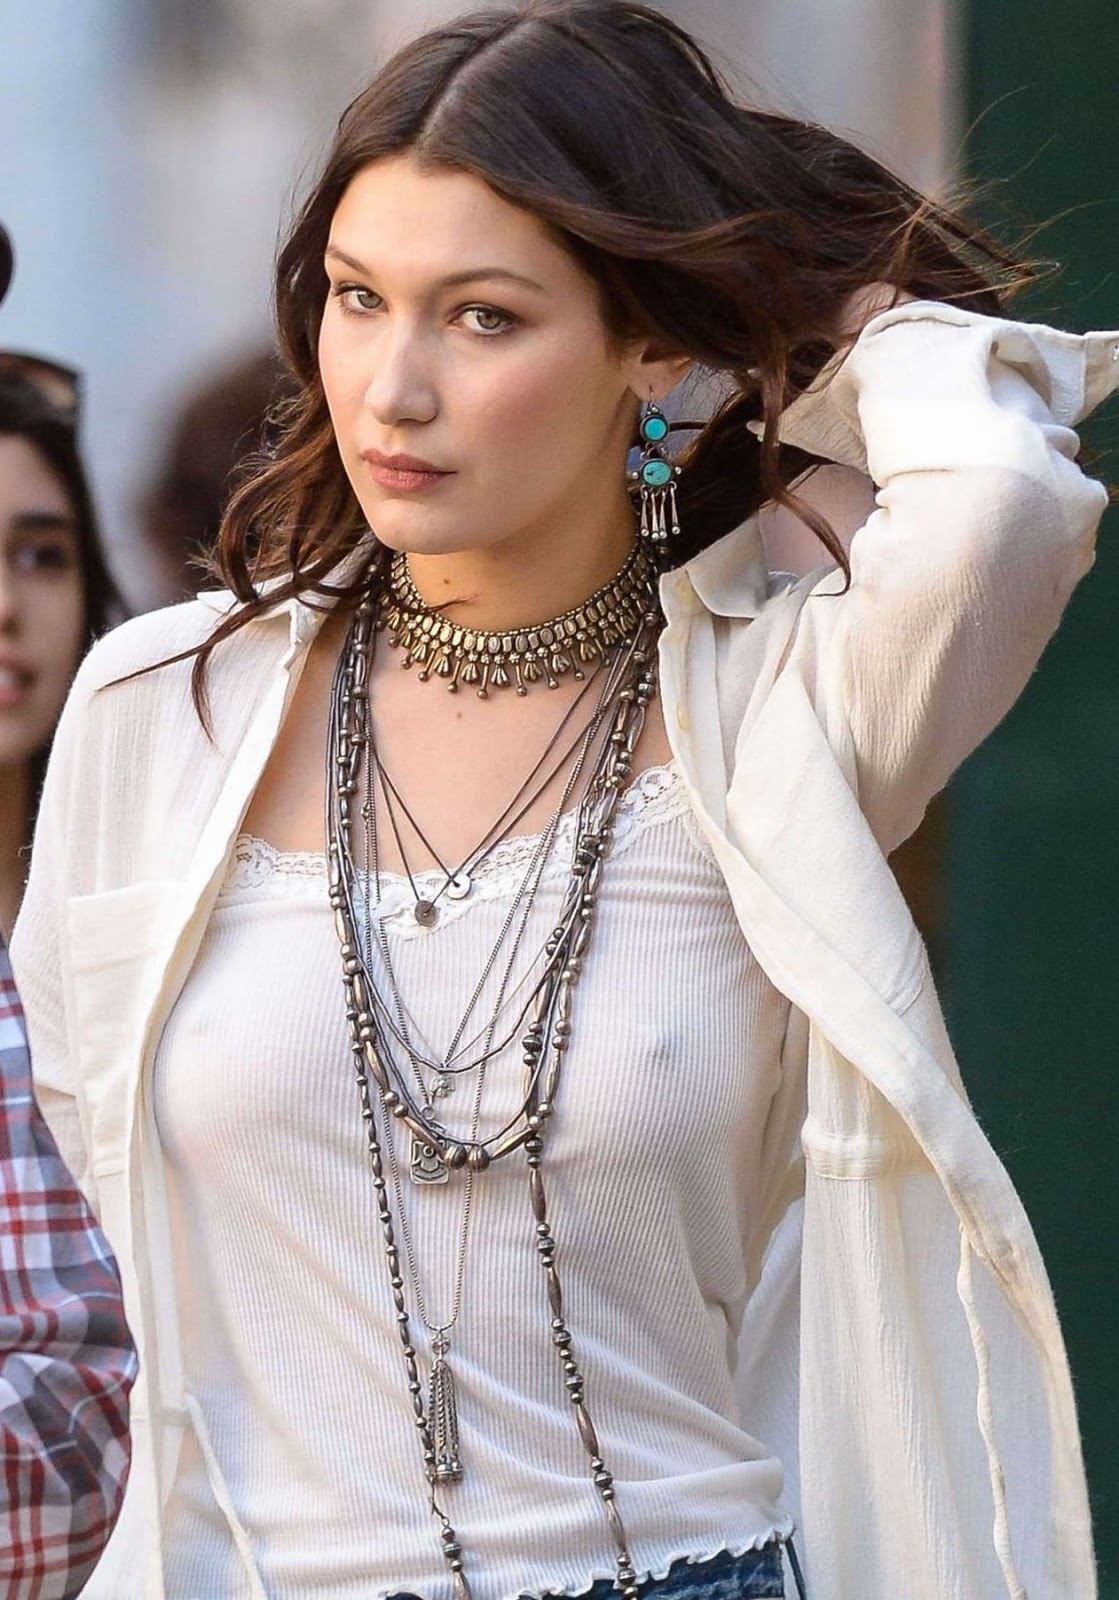 Photo and Biography: Bella Hadid Abbie Cornish Height